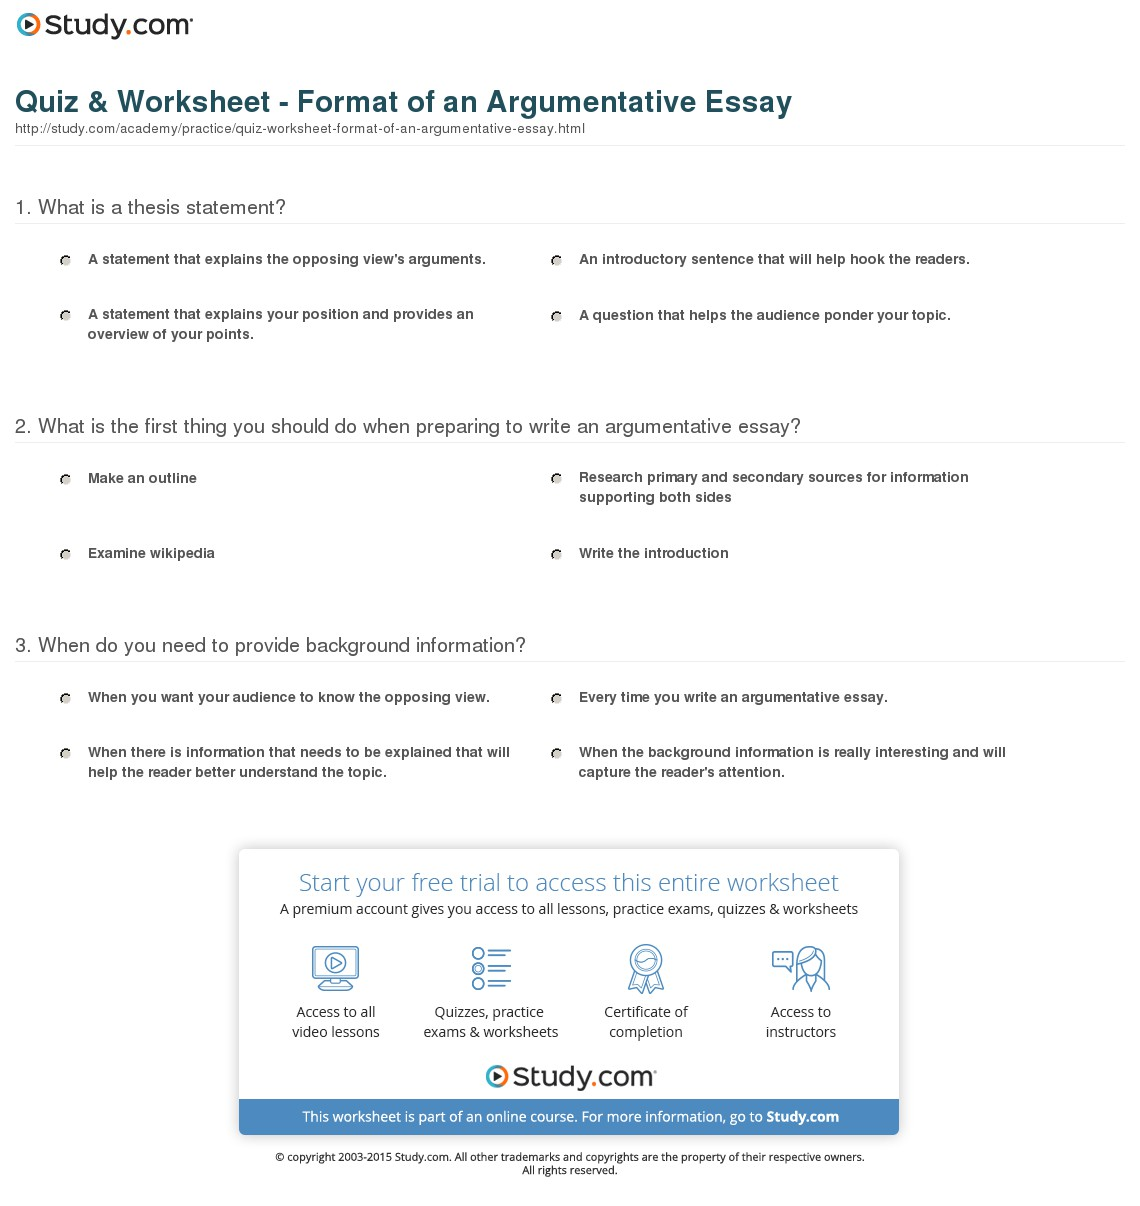 006 Argumentative Essay Outline Worksheet Quiz Format Of An Top Pdf Full